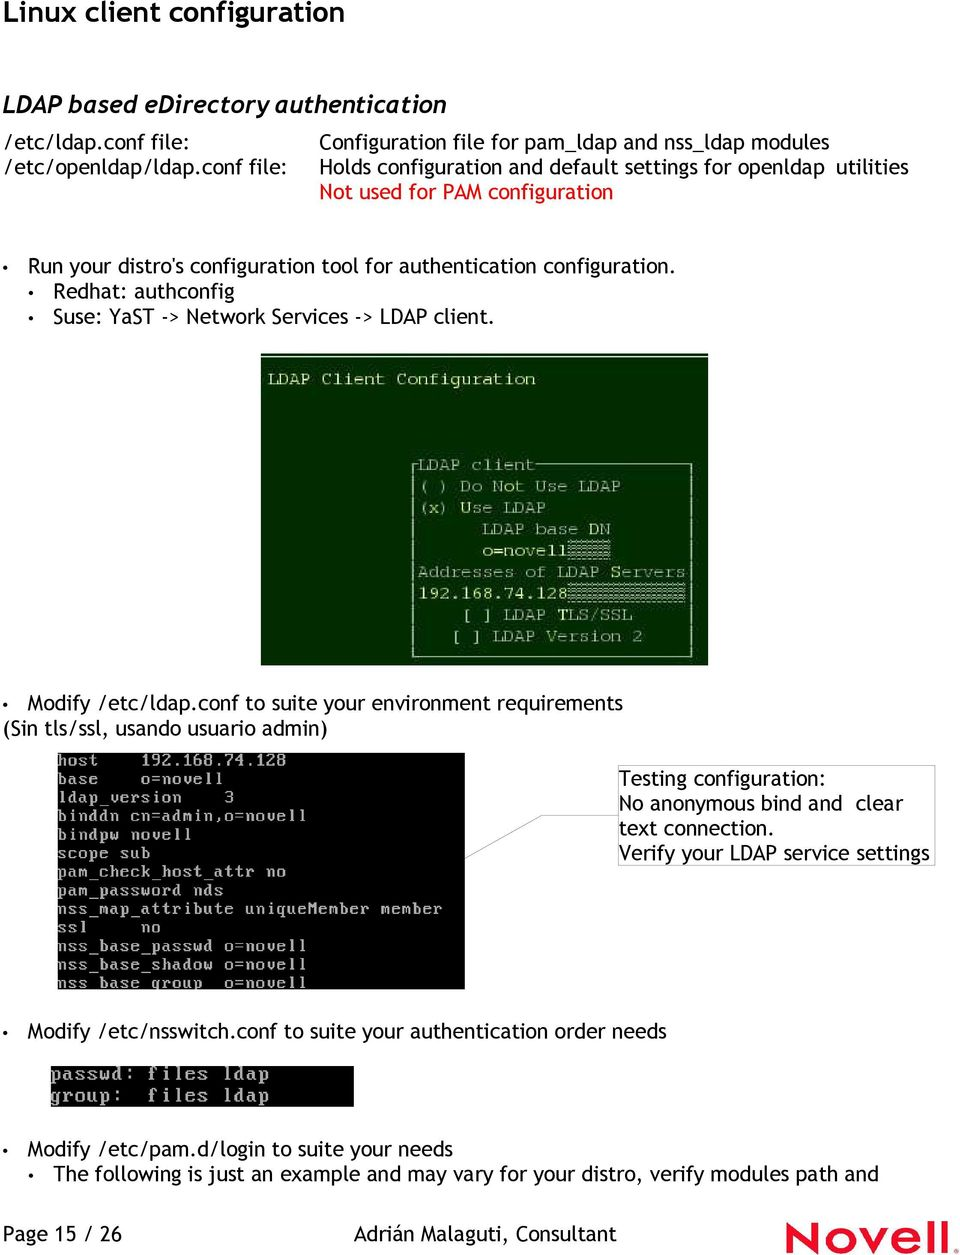 Linux Authentication using LDAP and edirectory - PDF